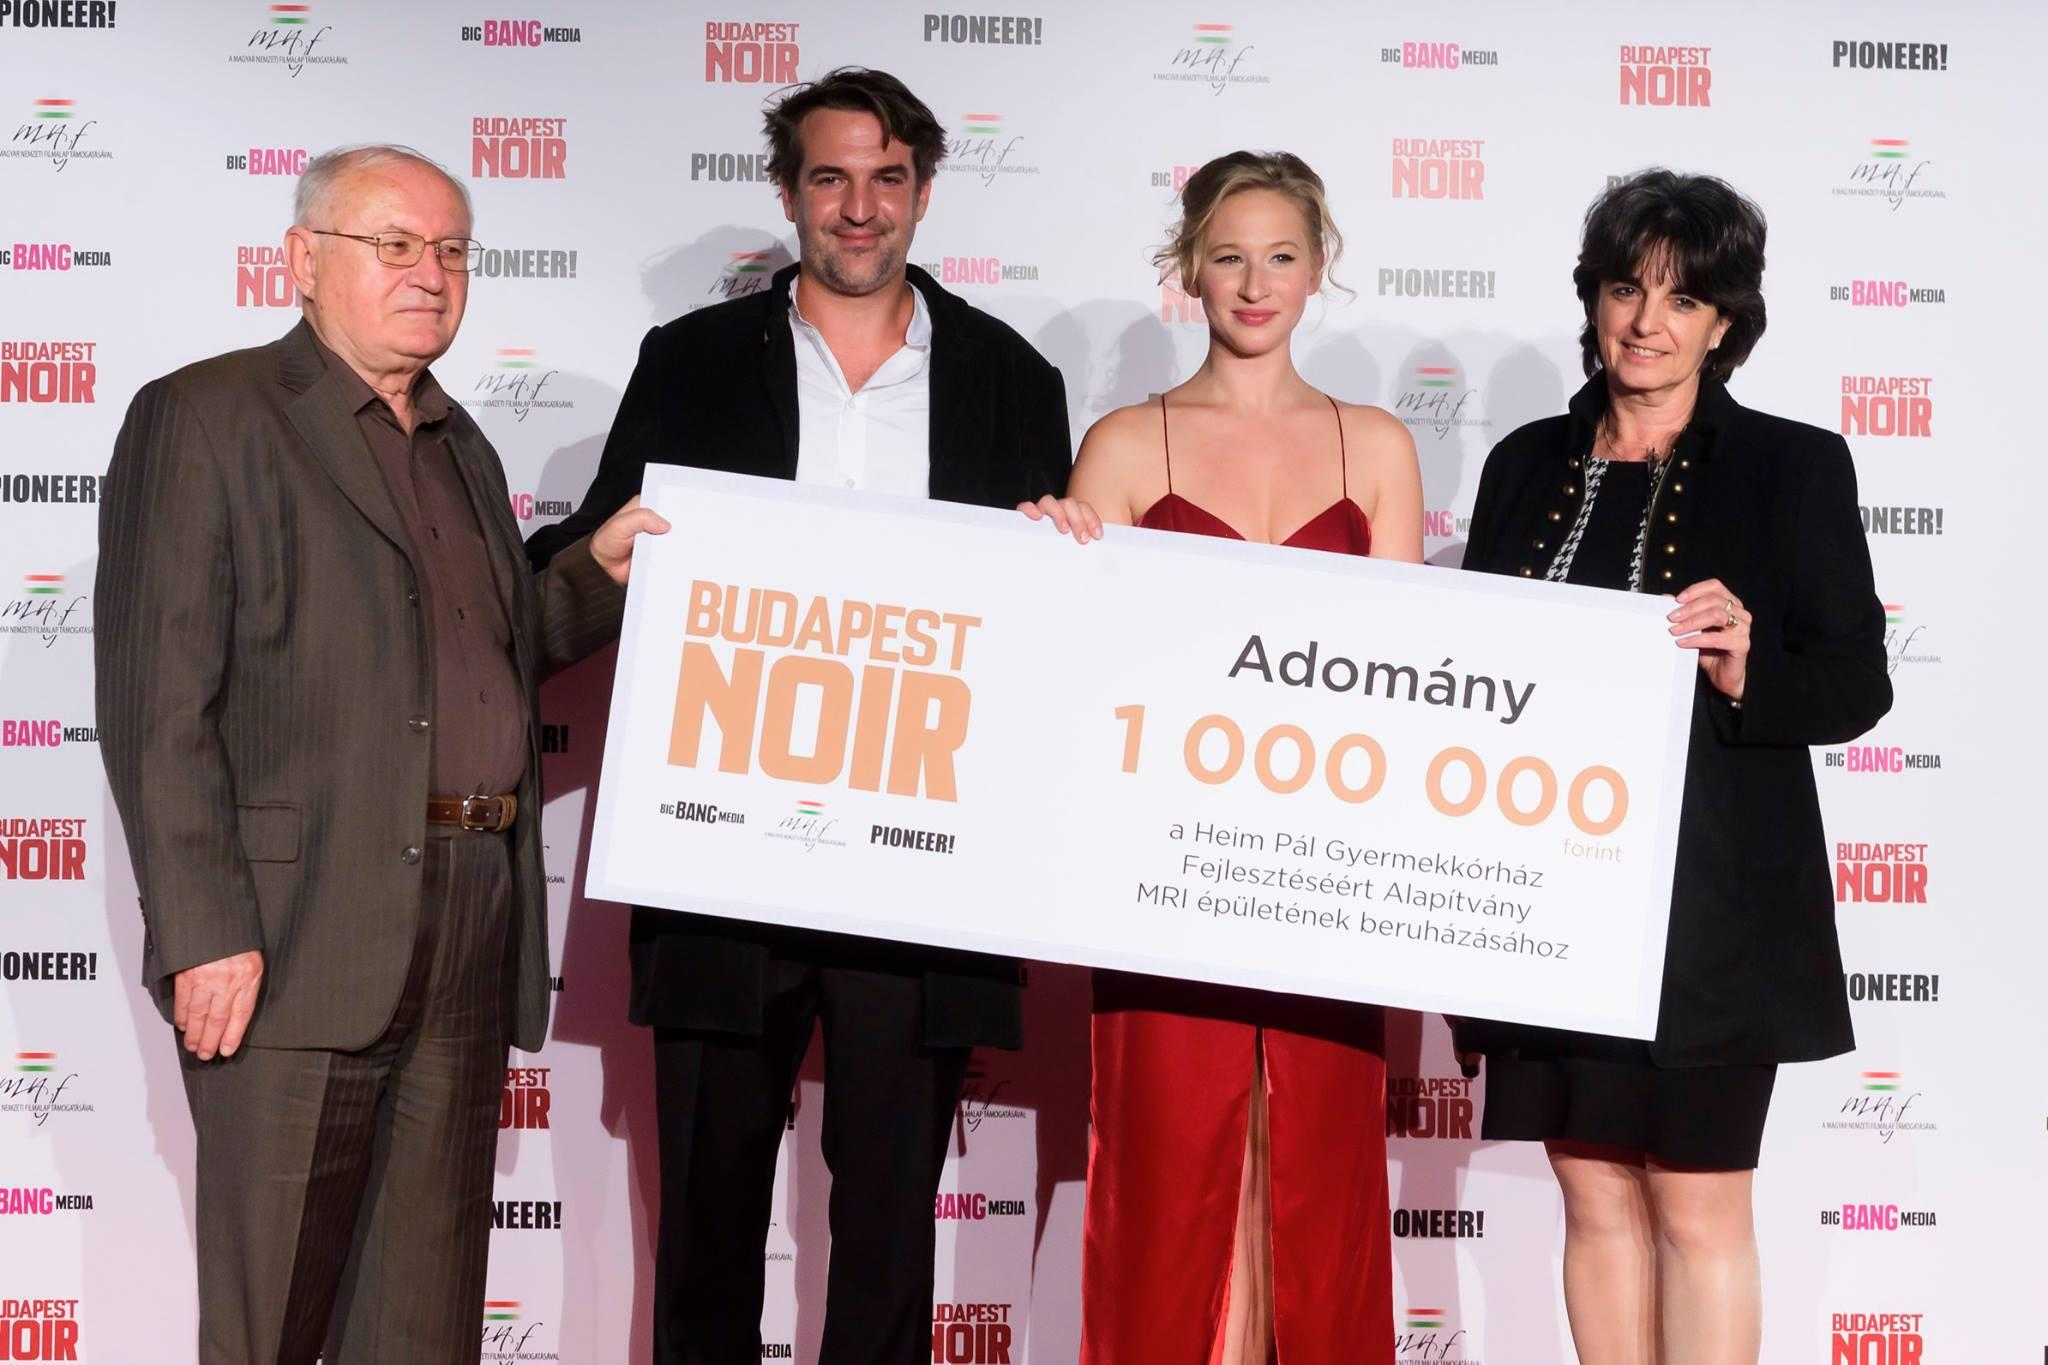 'Budapest Noir' Charity Film Premiere Enthrals Audience & Helps Hospital Children